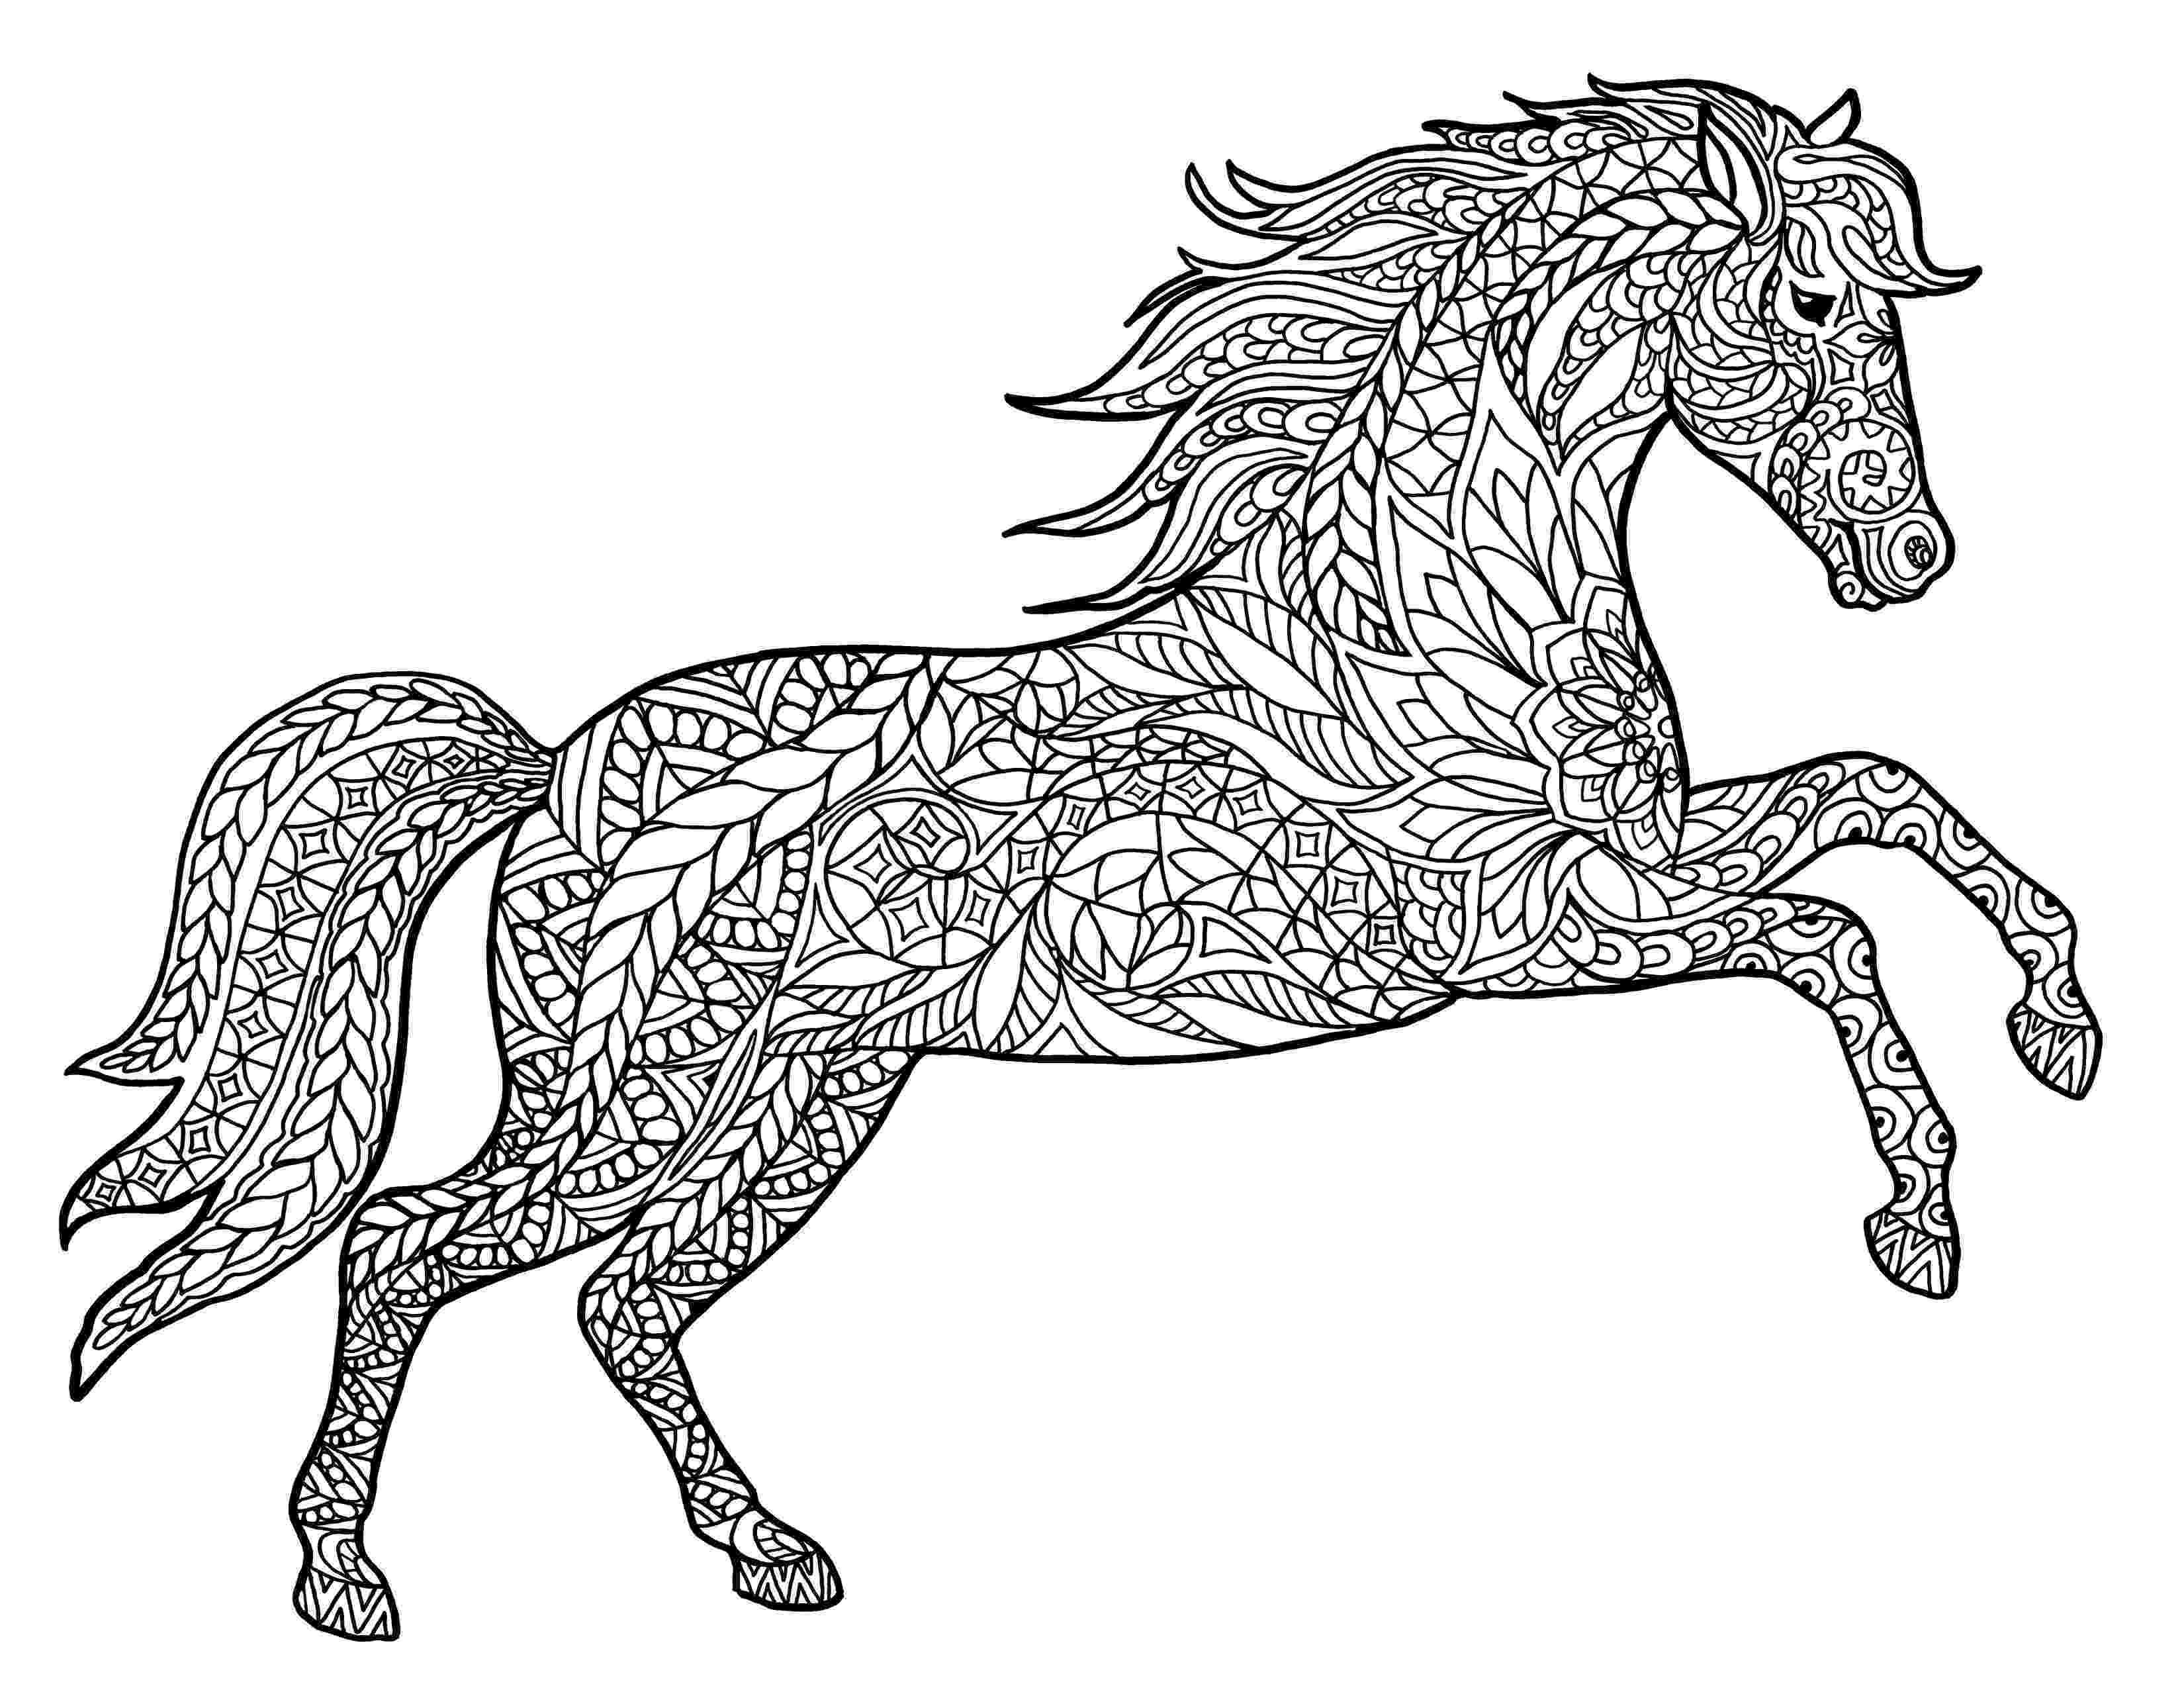 colouring pages for adults animals animal coloring pages for adults best coloring pages for for animals pages adults colouring